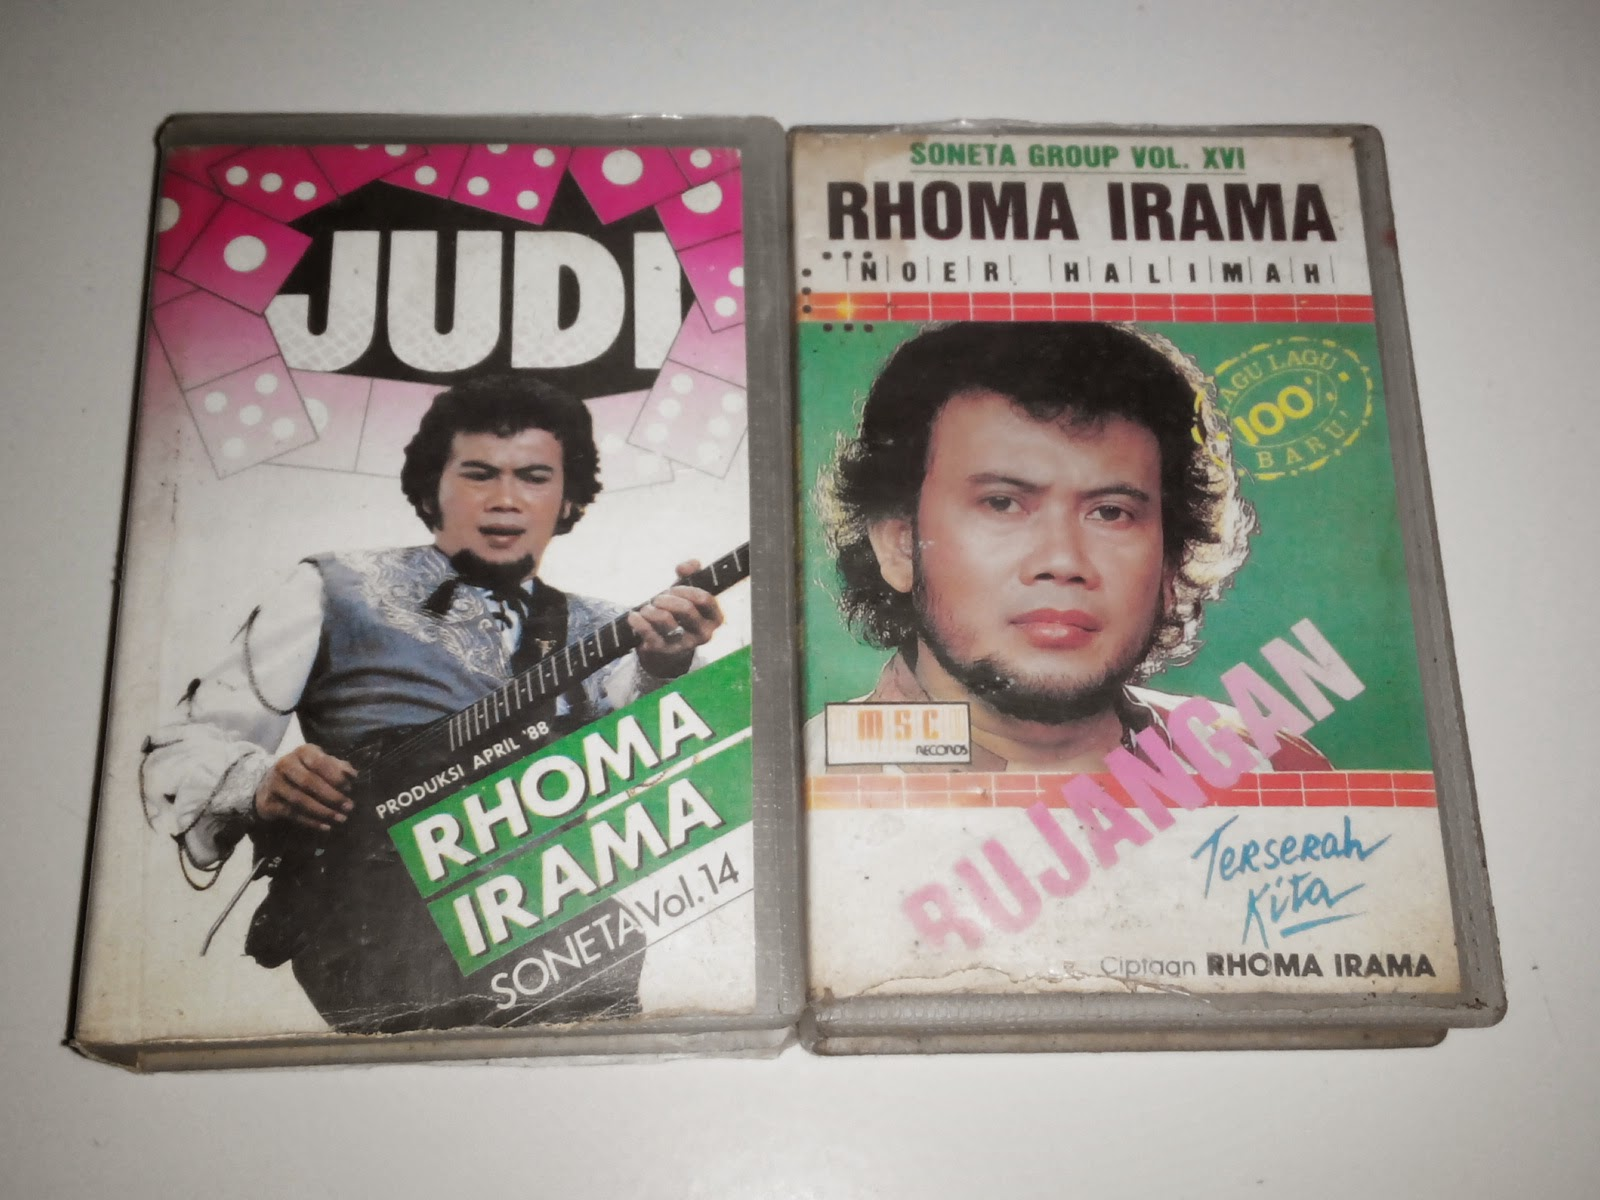 showing 1st image of Iwan Fals Album Lawas Maret 2014 - KASET LAWAS